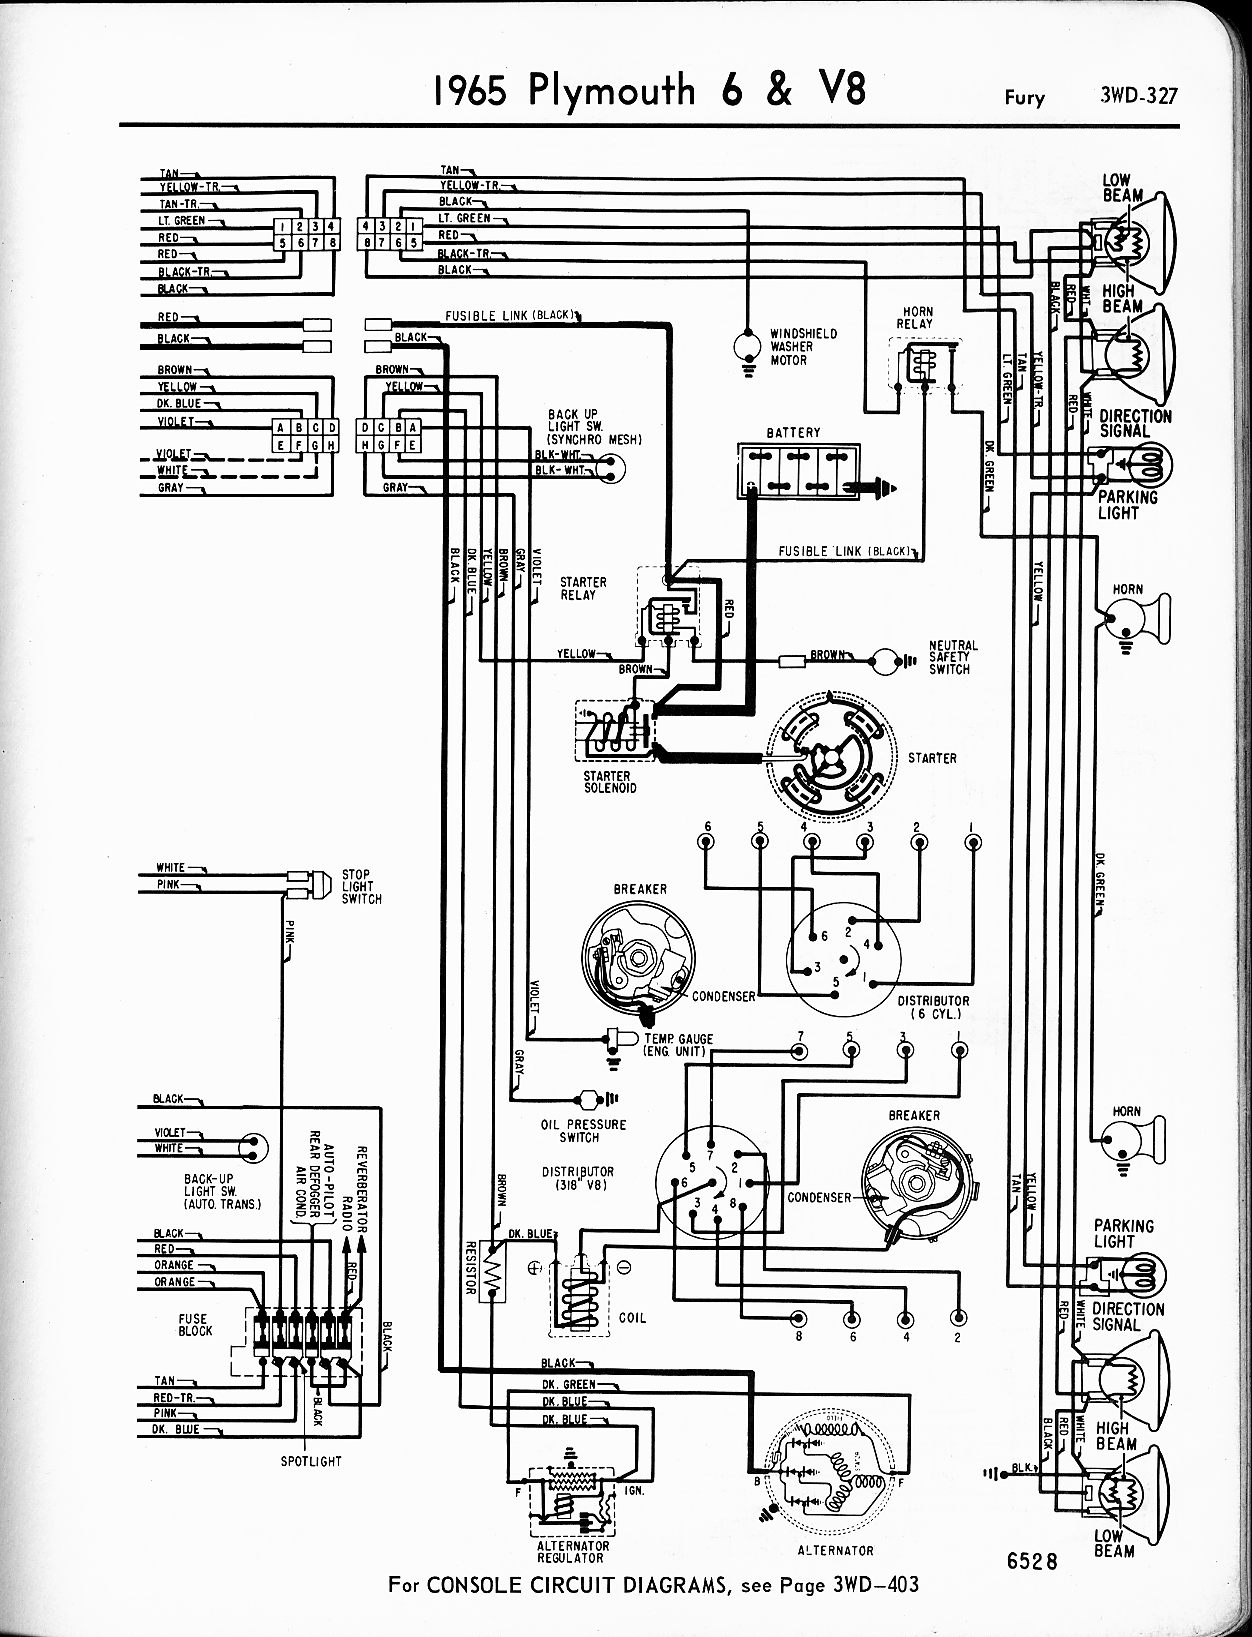 1956 1965 plymouth wiring the old car manual project 2004 Dodge Ram 2500 HID Installation 1965 plymouth 6 \u0026 v8 fury, right page